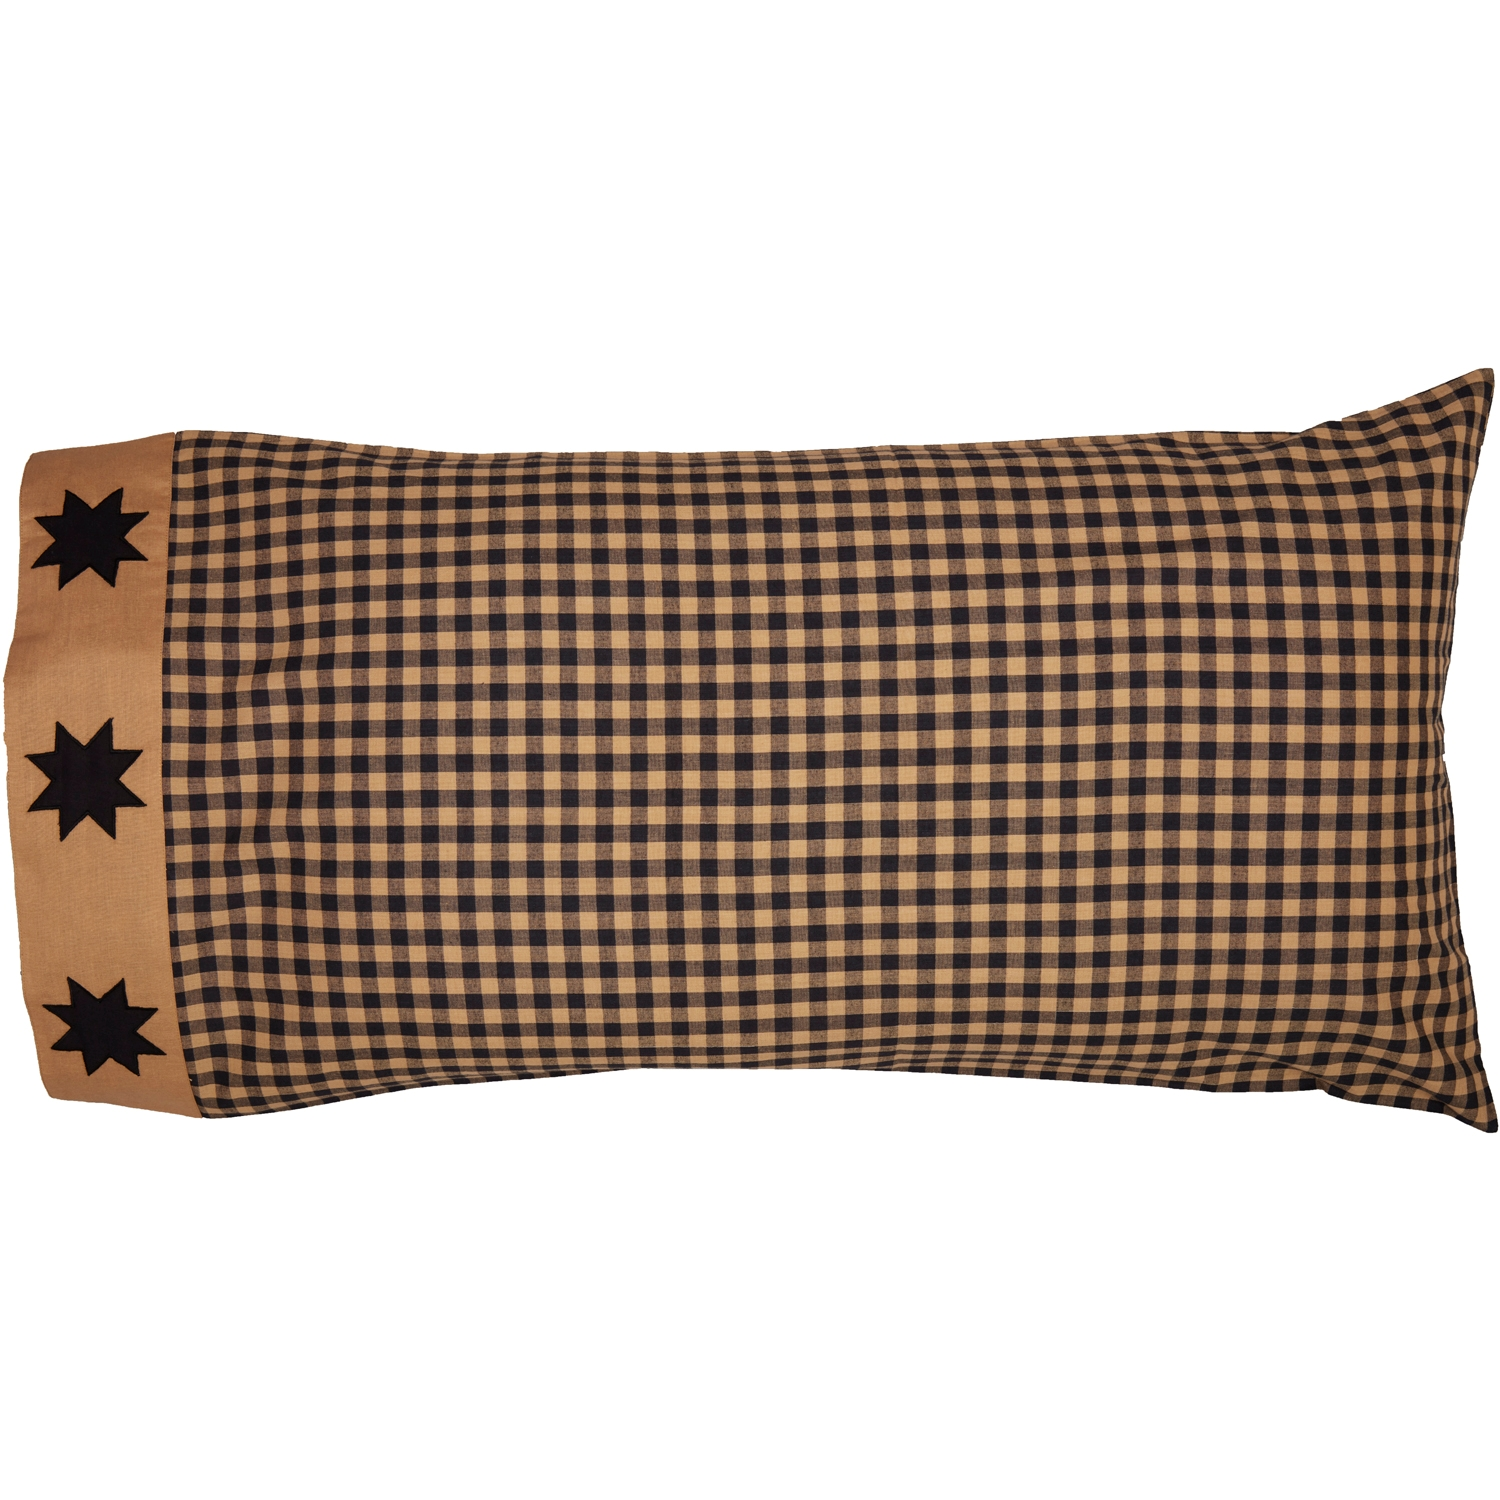 Dakota Star King Pillow Case Set of 2 21x40